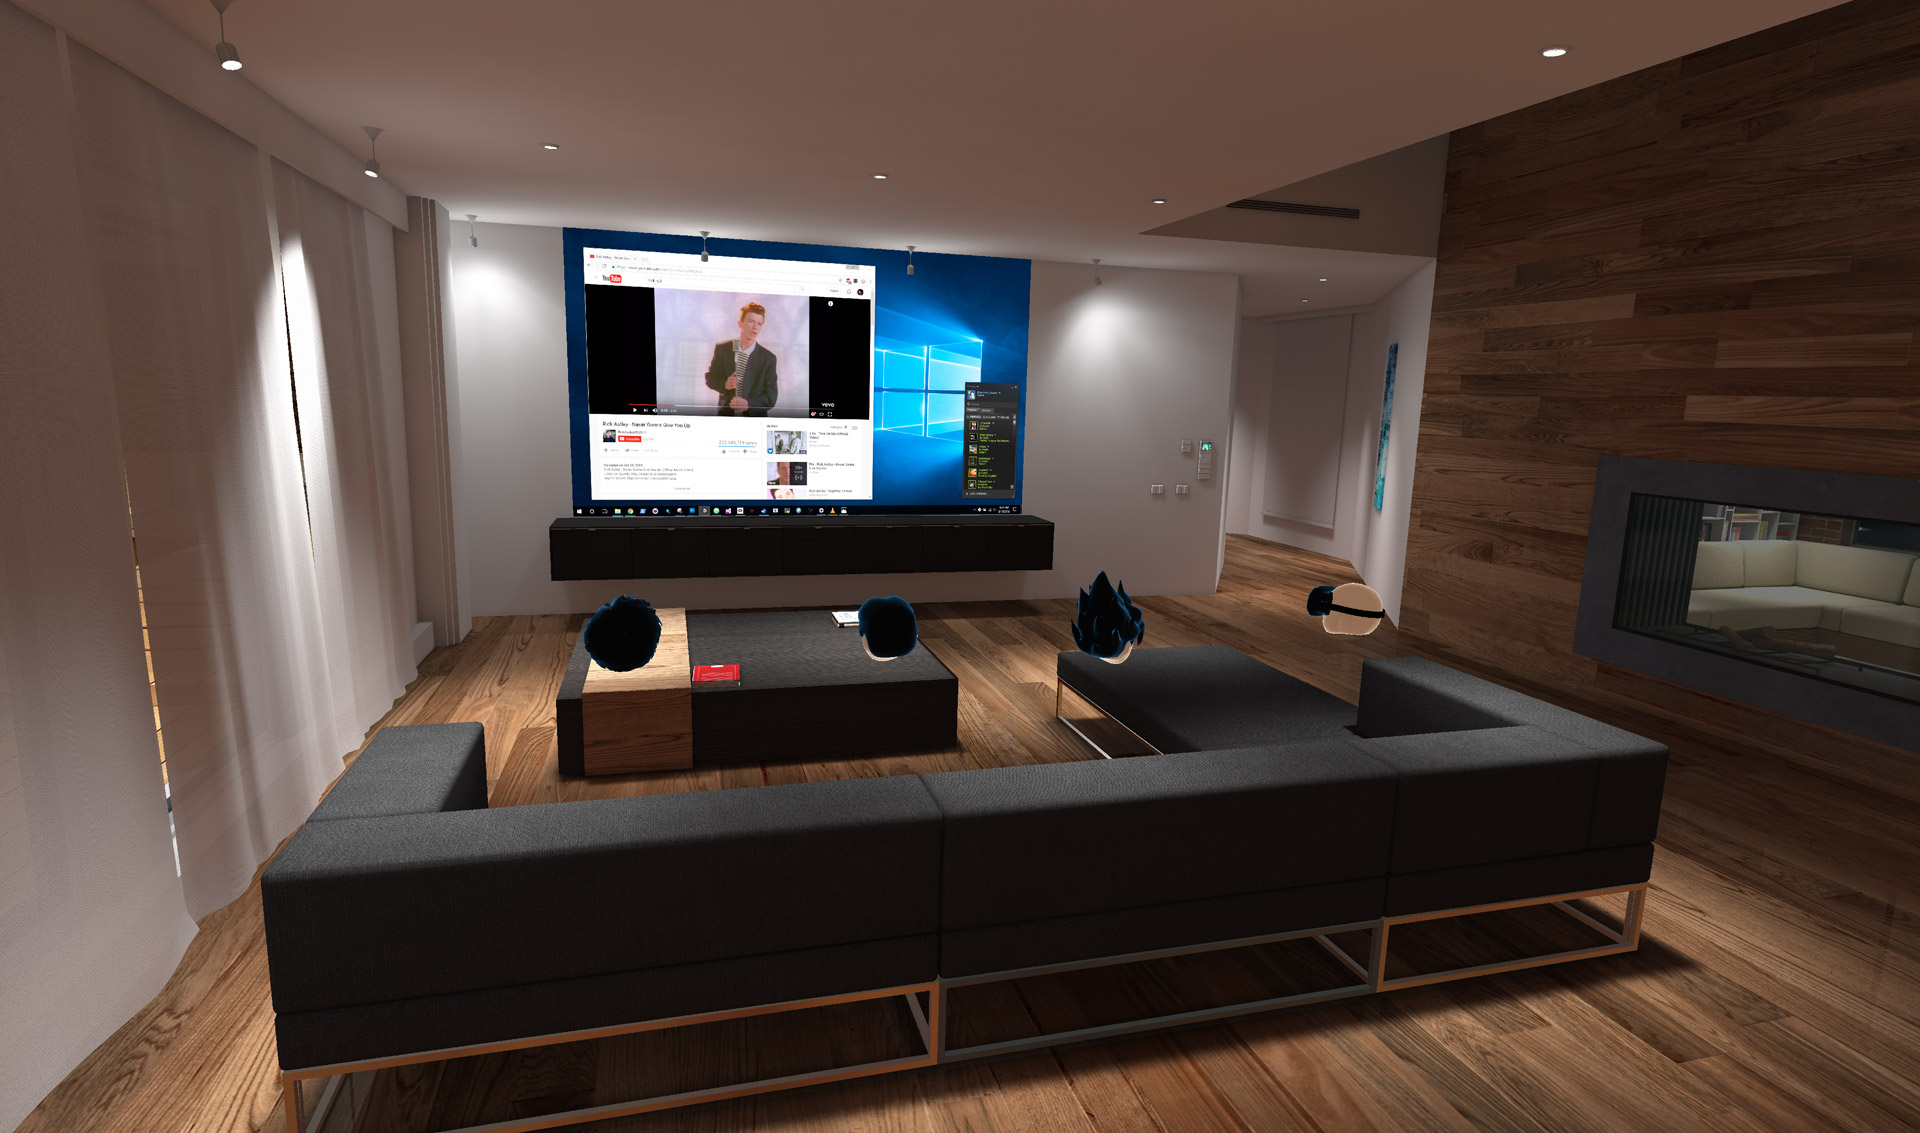 39 bigscreen 39 launches on oculus home update brings custom for Vr for home